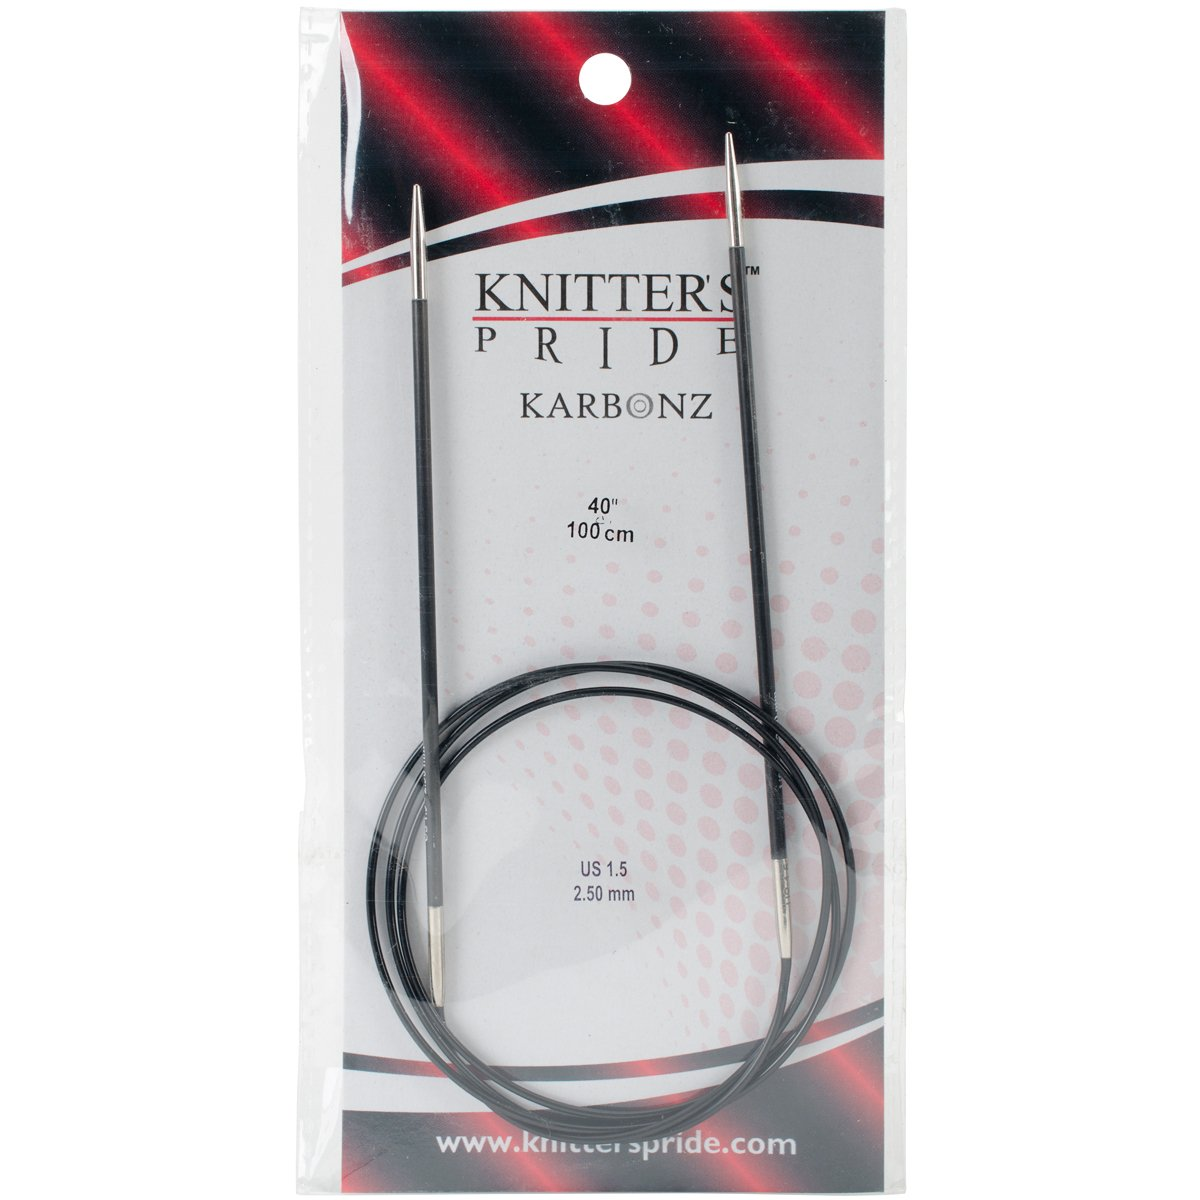 Knitter's Pride Karbonz Circular 40-inch (100cm) Knitting Needles; Size US 1.5 (2.50mm) 110233 by Knitter's Pride B00CQELQX8